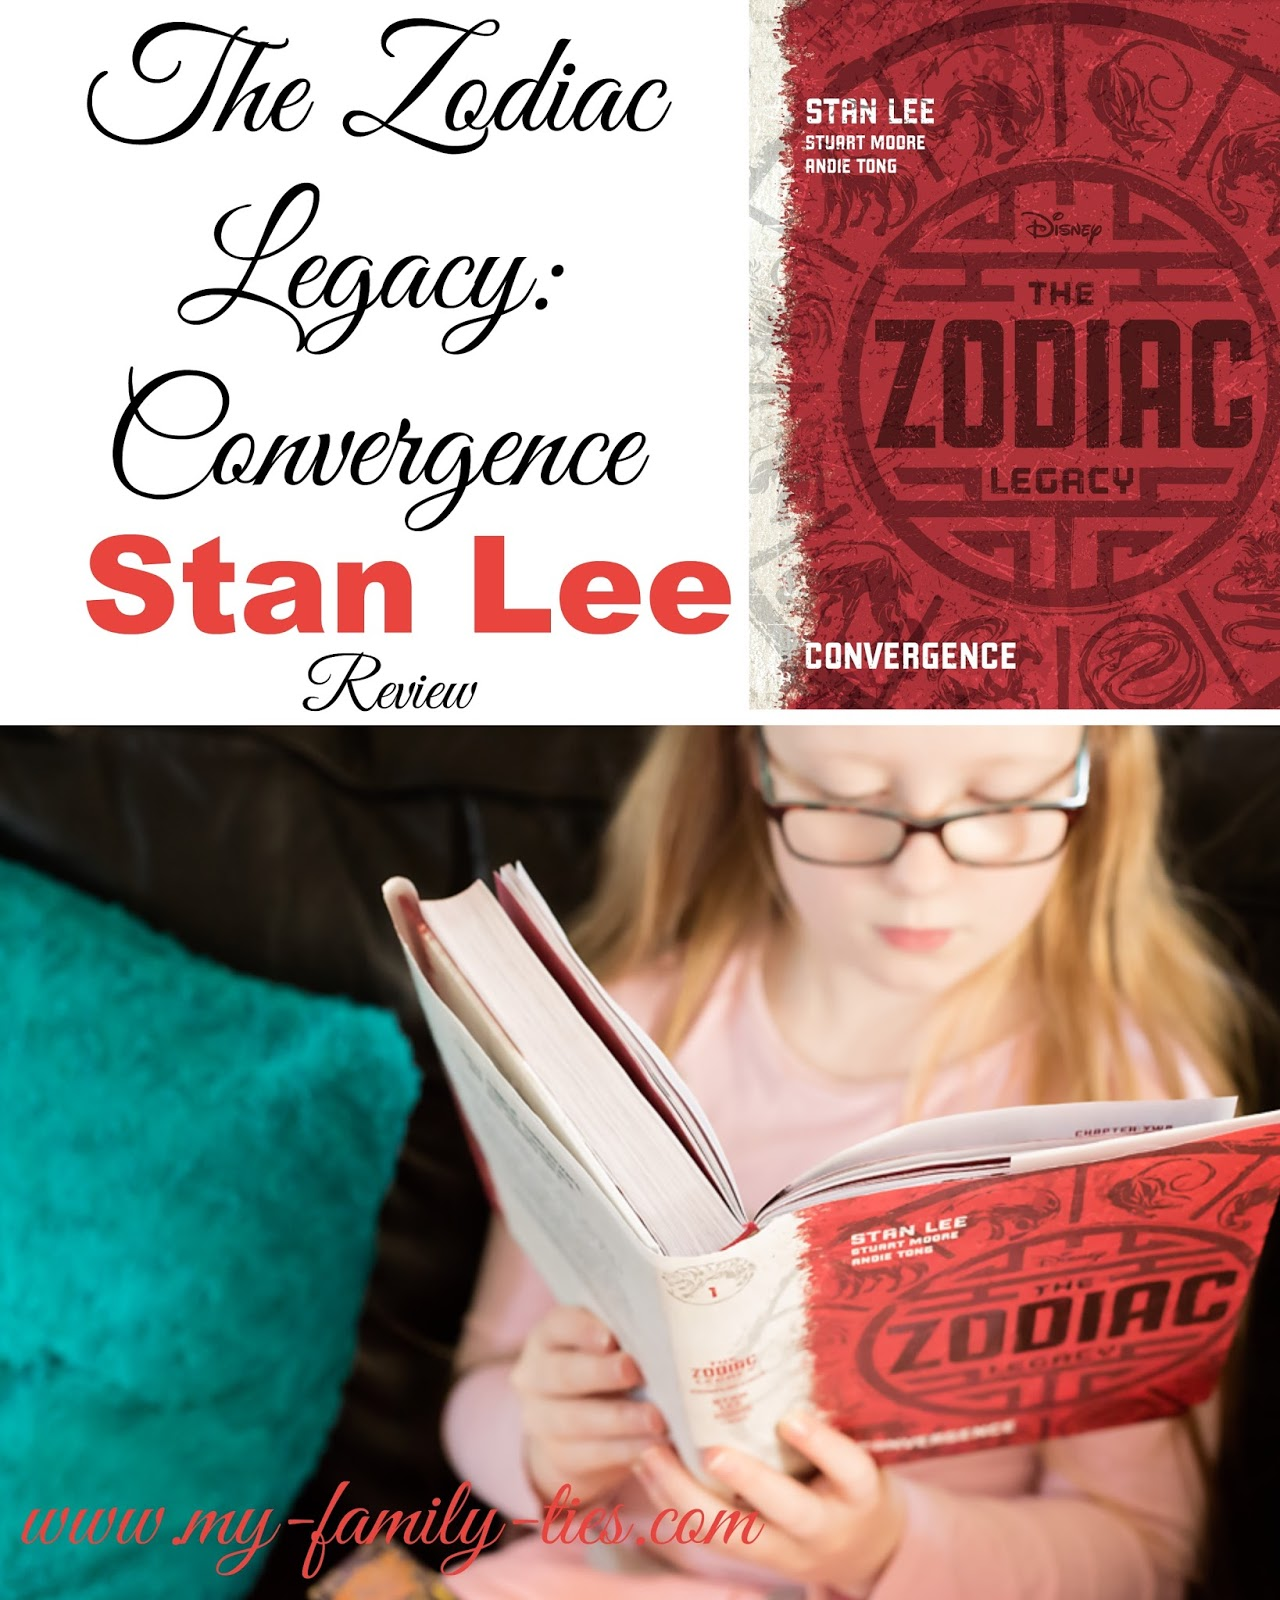 The Zodiac Legacy:convergence By Stan Lee & Andie Tong Book Review